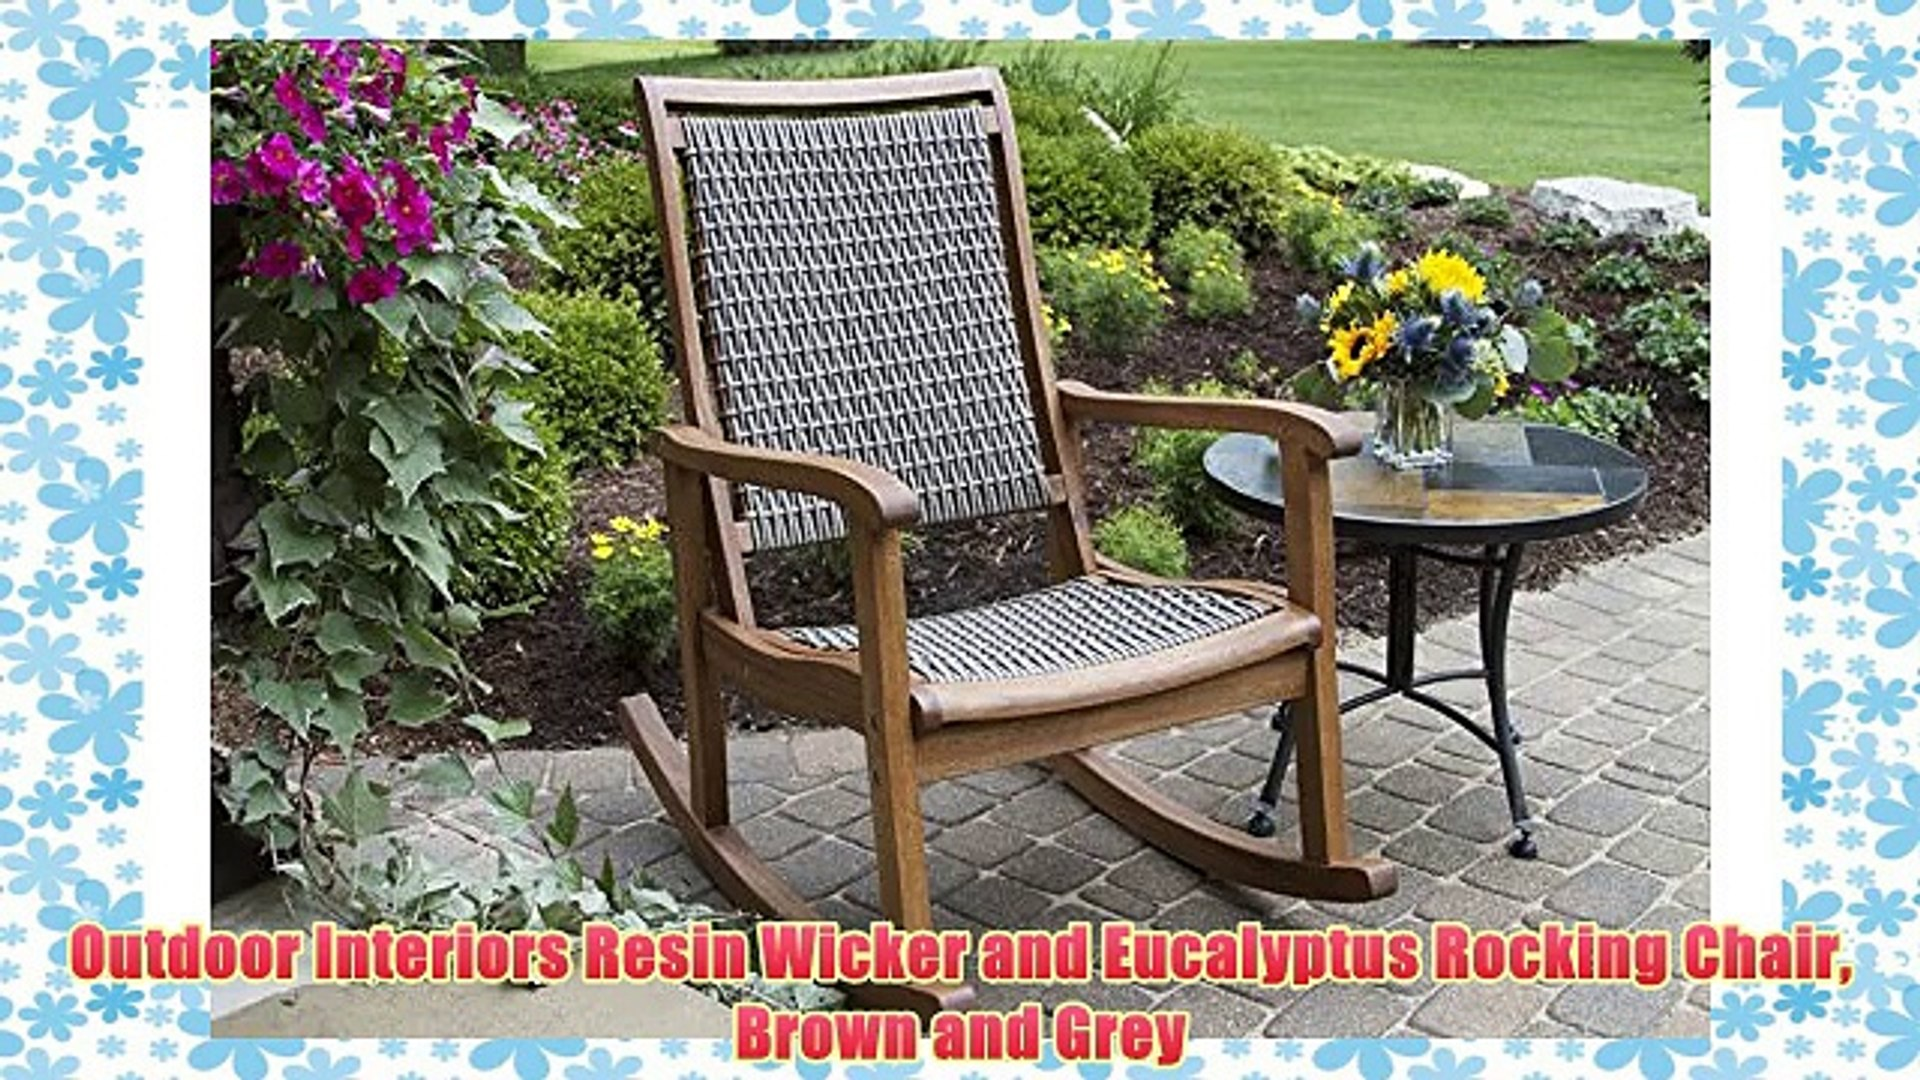 Groovy Outdoor Interiors Resin Wicker And Eucalyptus Rocking Chair Brown And Grey Cjindustries Chair Design For Home Cjindustriesco